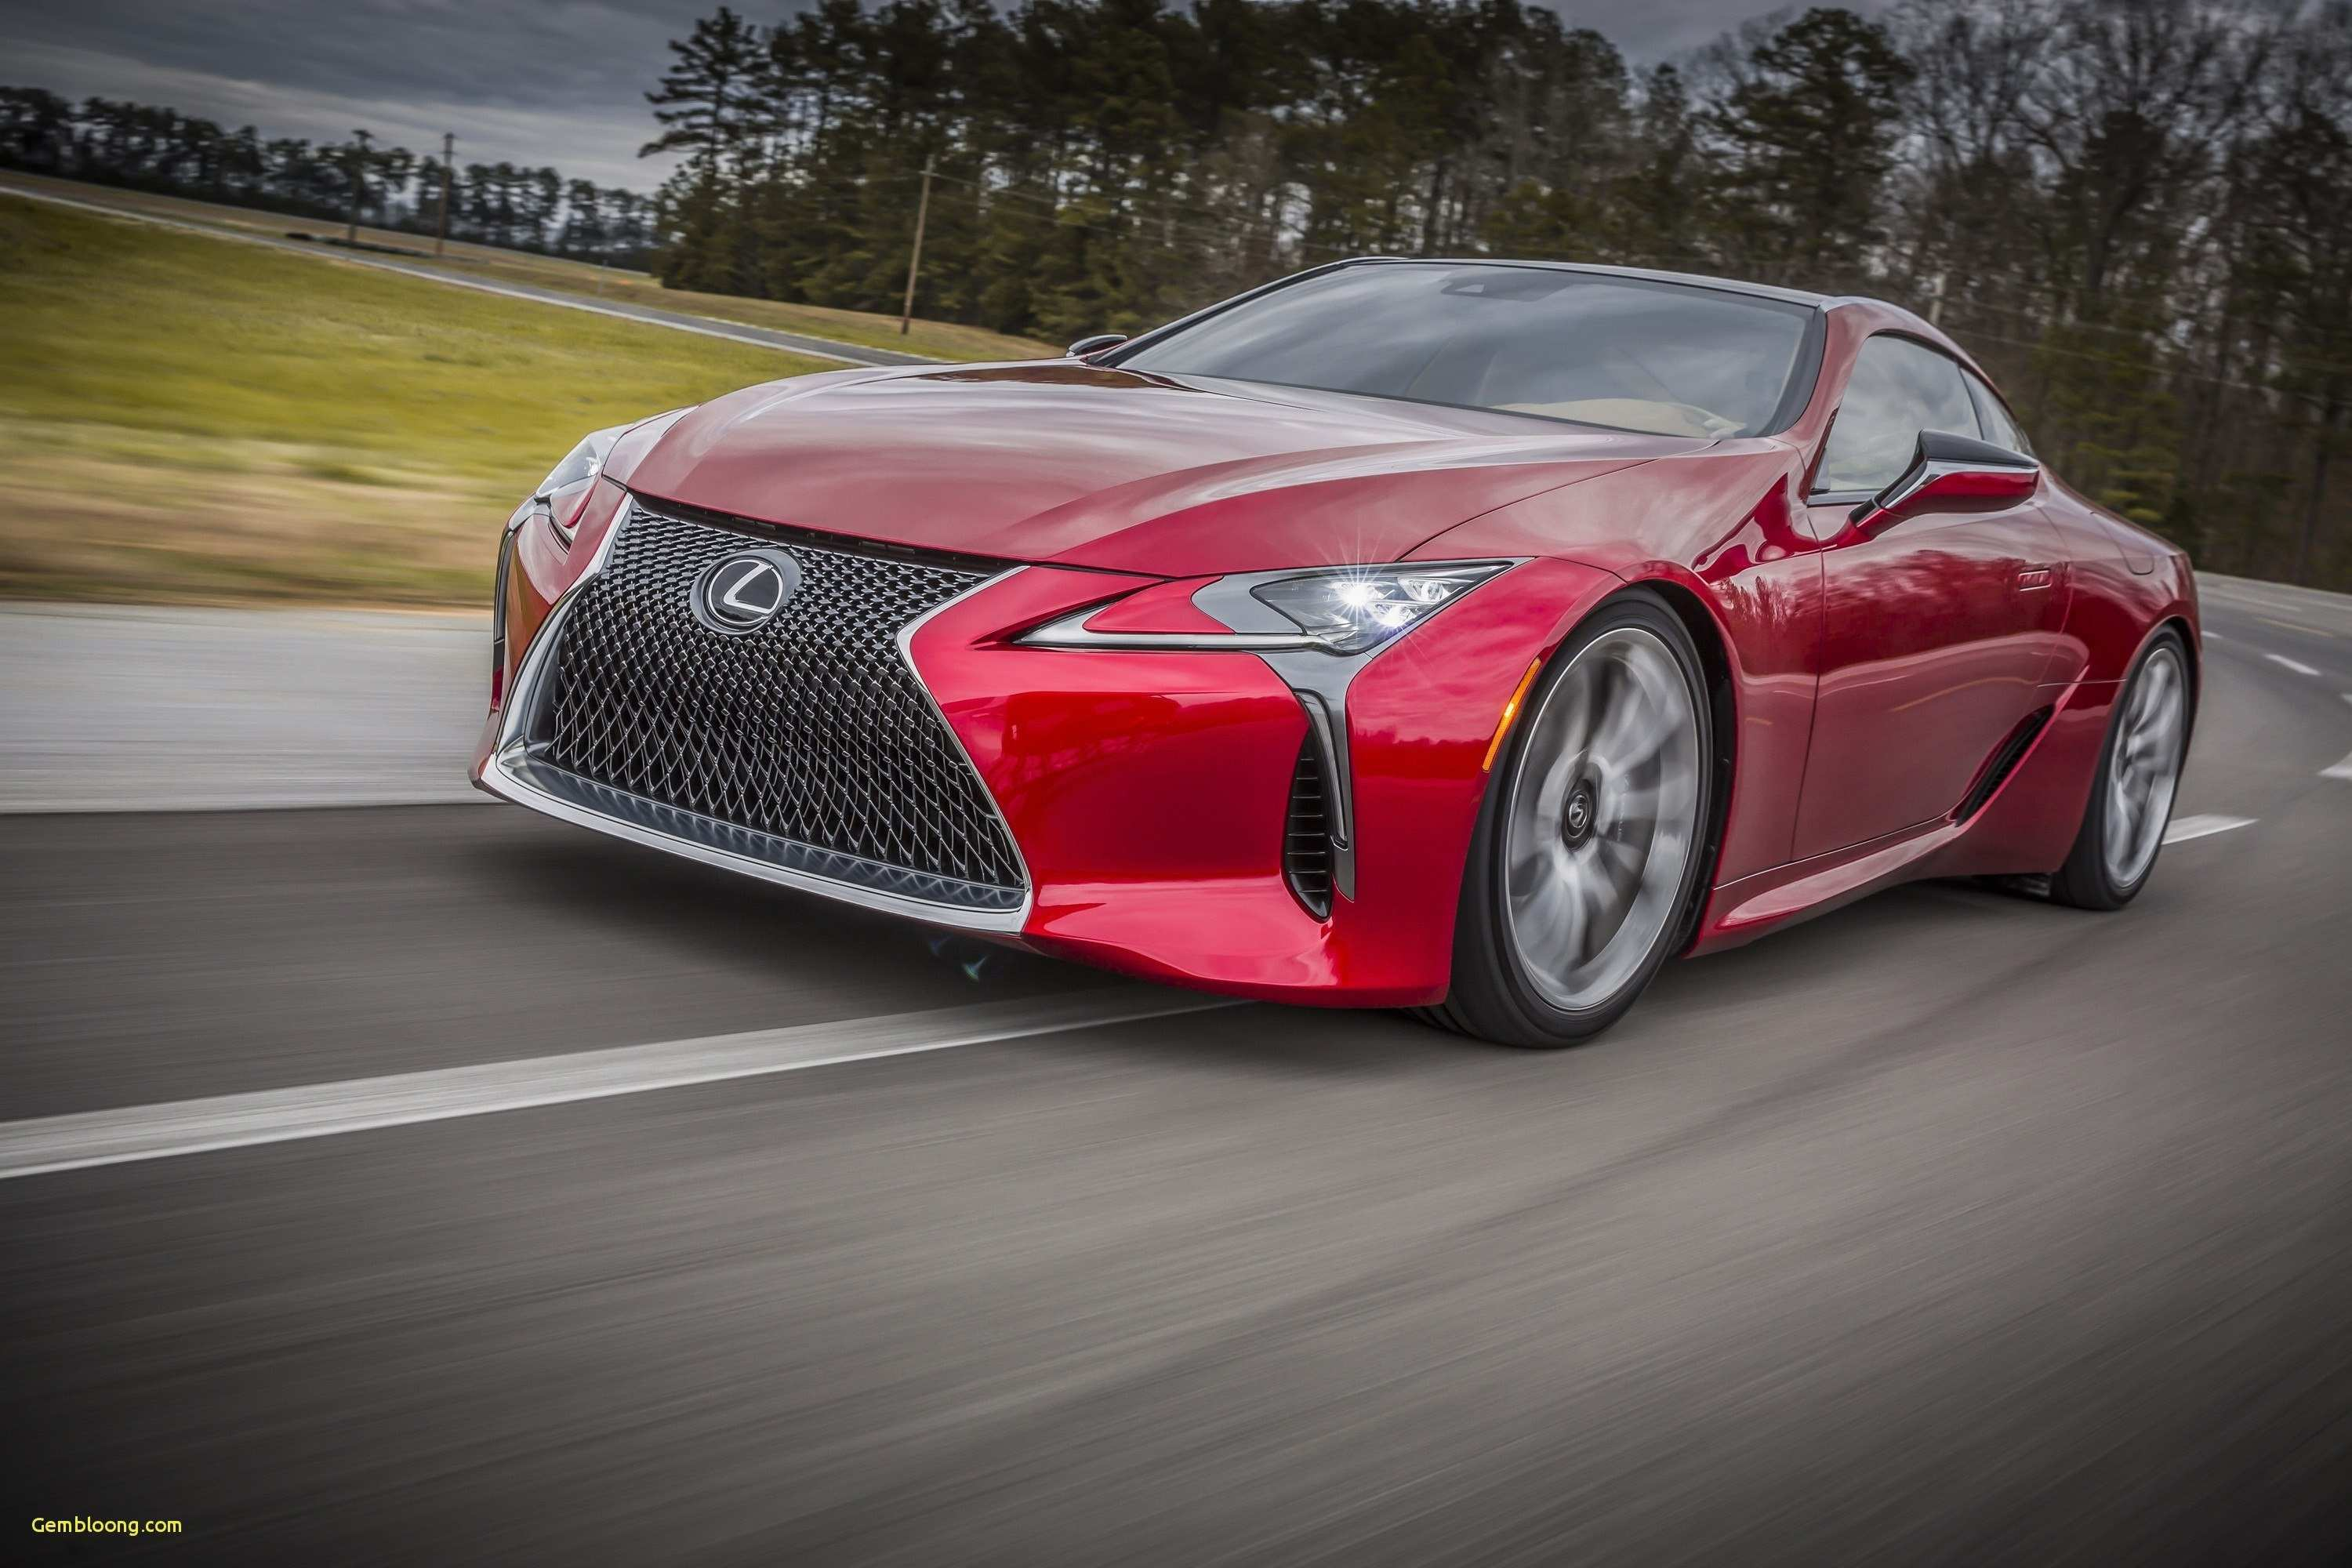 60 The Lexus Lf Lc Release Date Engine for Lexus Lf Lc Release Date